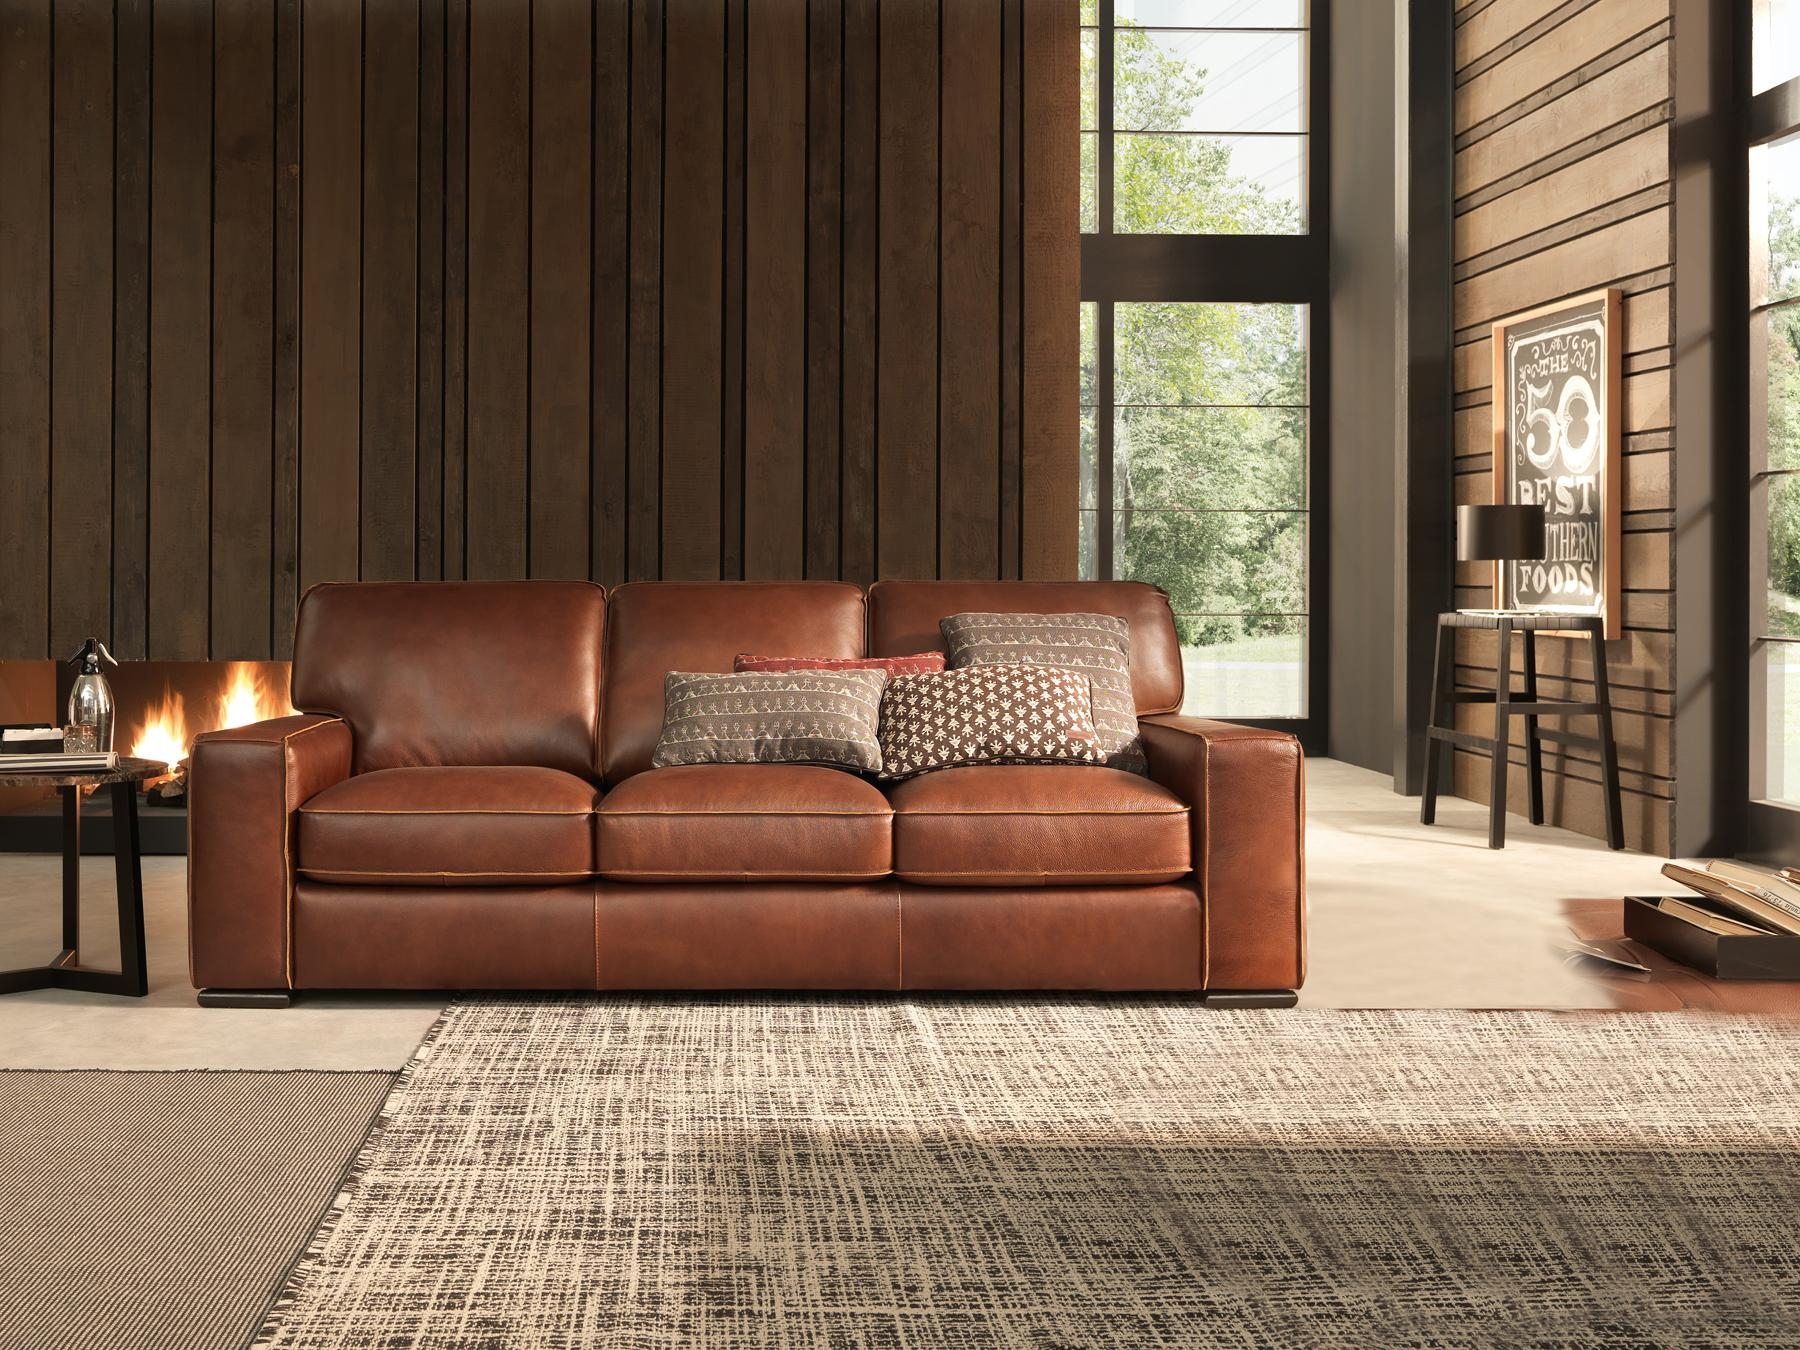 Natuzzi Italian Leather Sofa | Sofa Gallery | Kengire Throughout Italian Leather Sofas (Image 13 of 20)